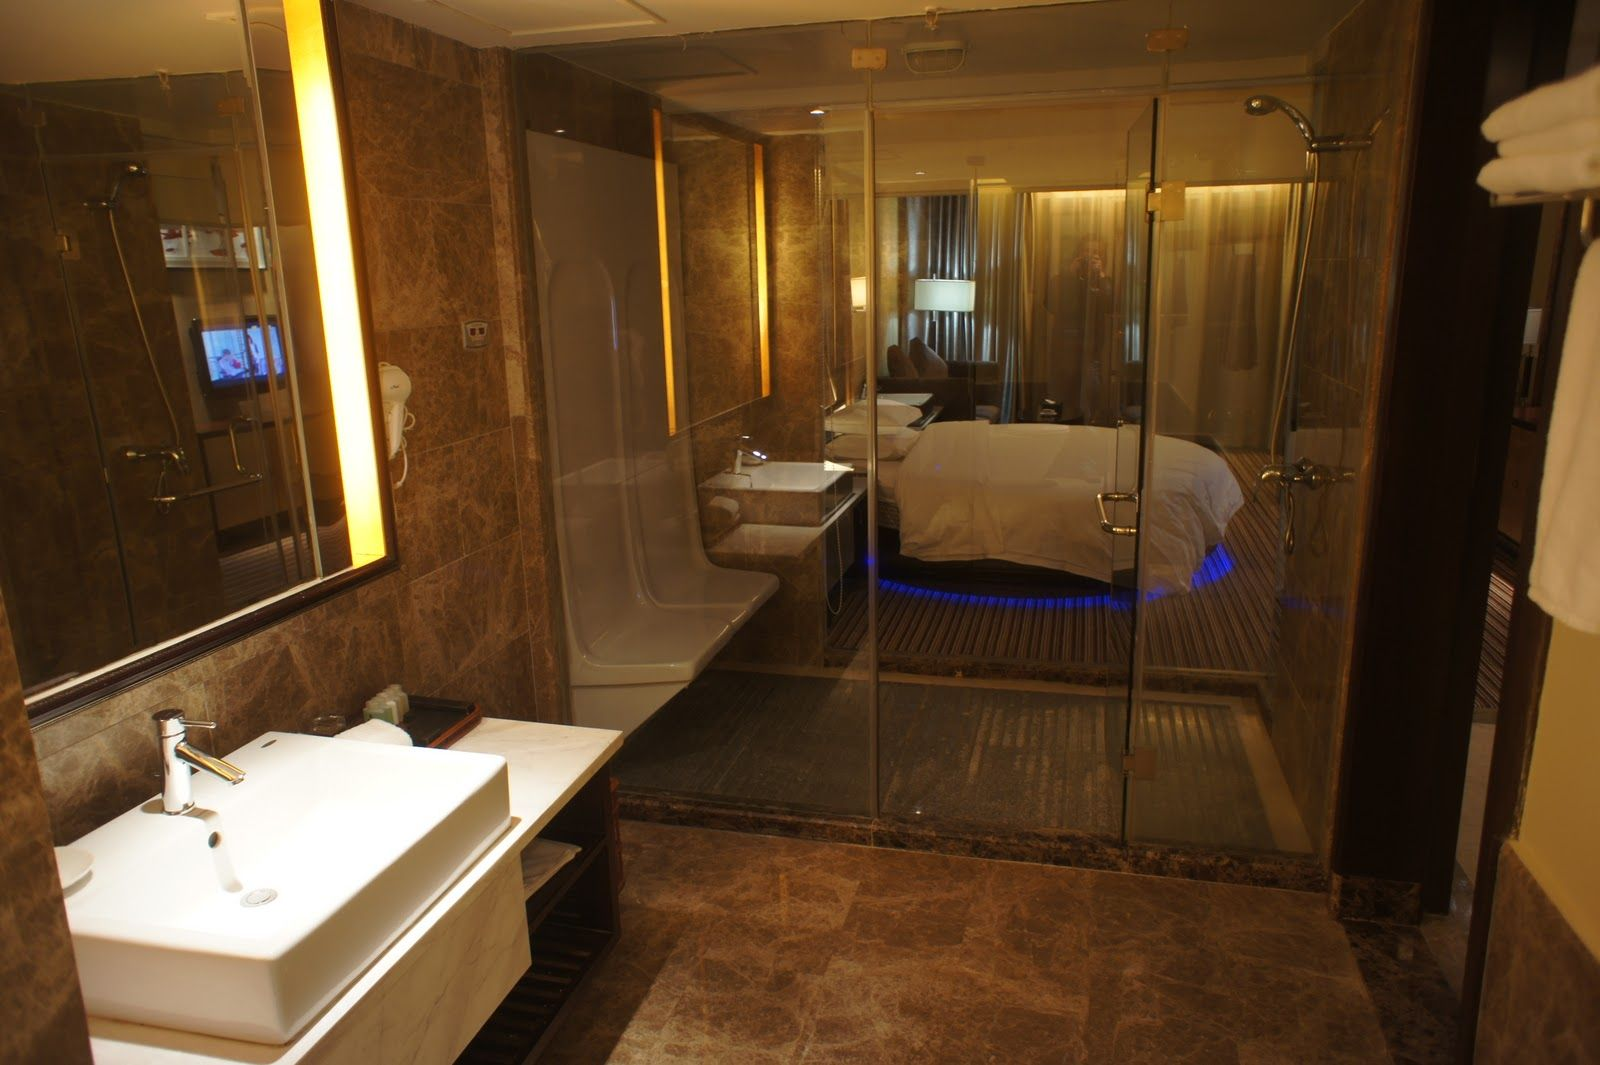 Luxury hotel bathrooms - 13 Best Inspiration Hotel Rooms Images On Pinterest Google Images Hotel Bathrooms And Hotel Suites